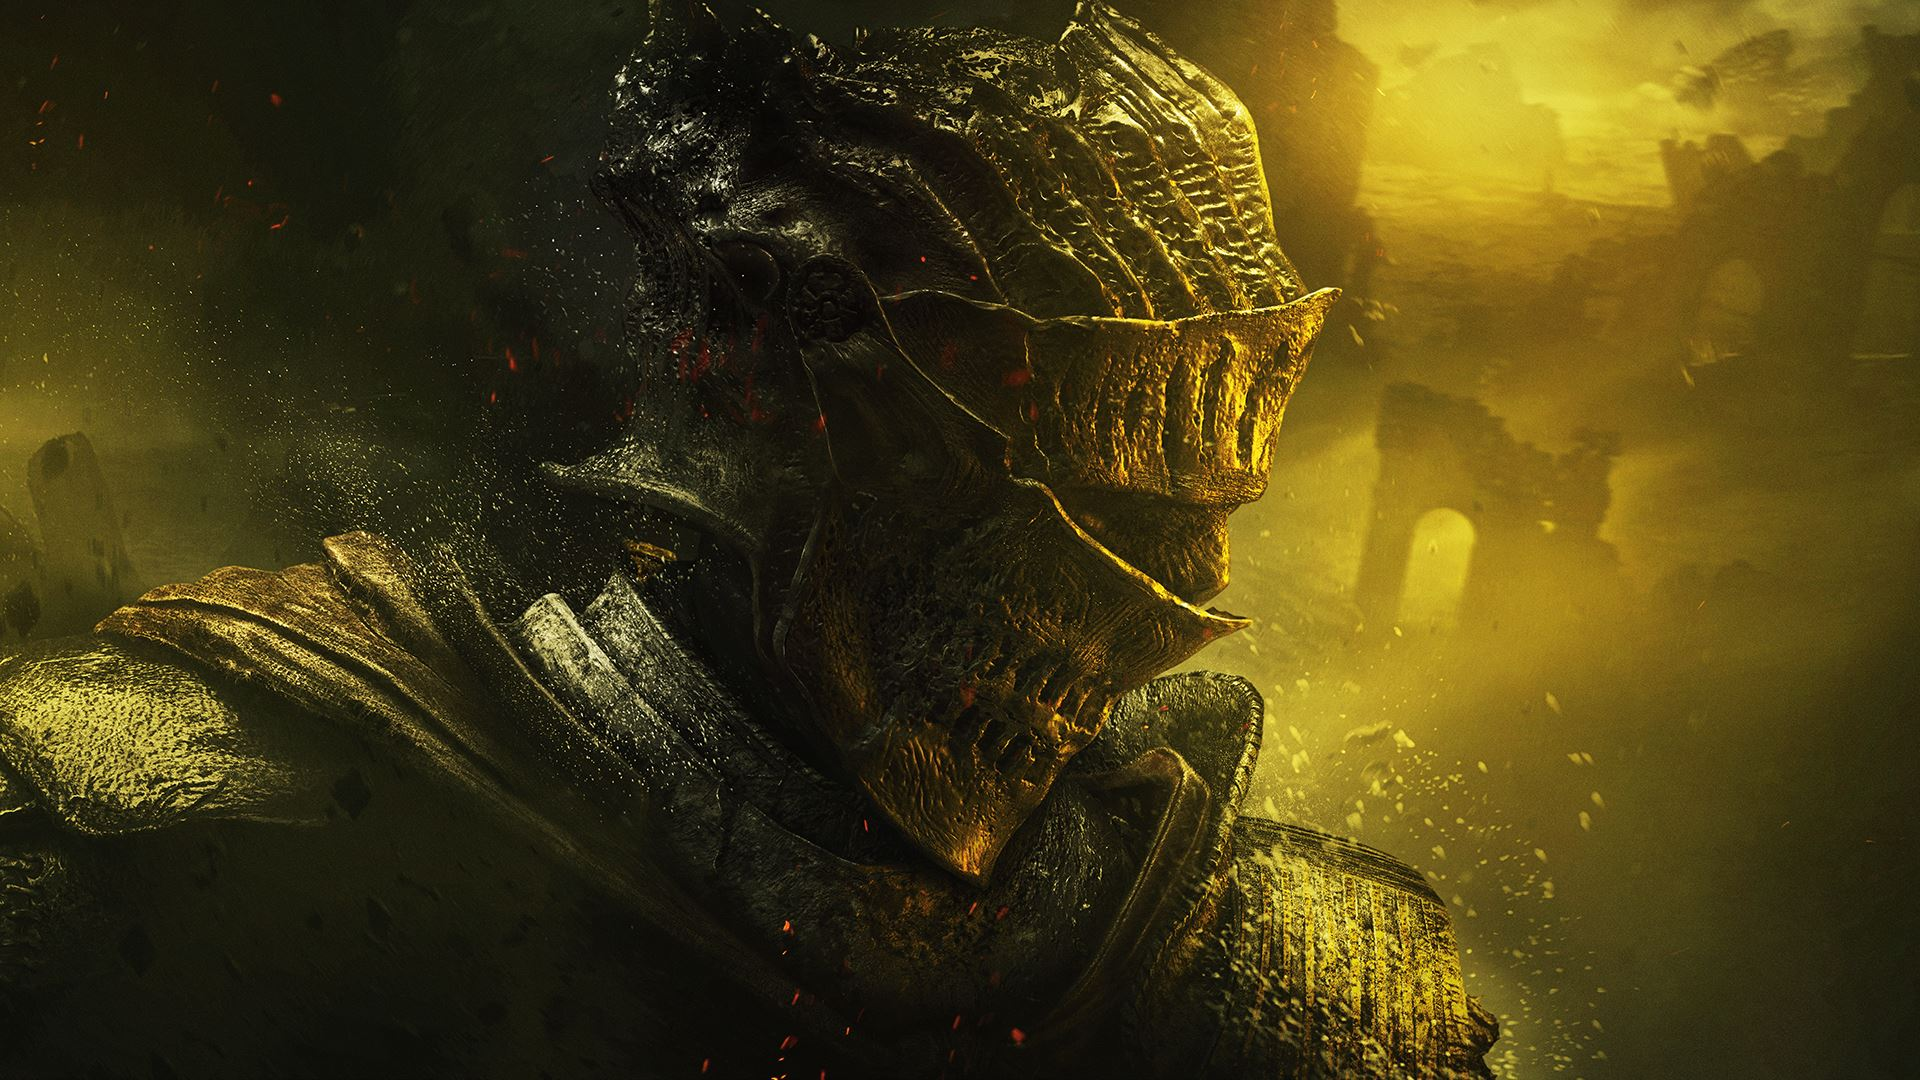 Fan Edits Dark Souls 3 Into Awesome Full Length Movie image 3